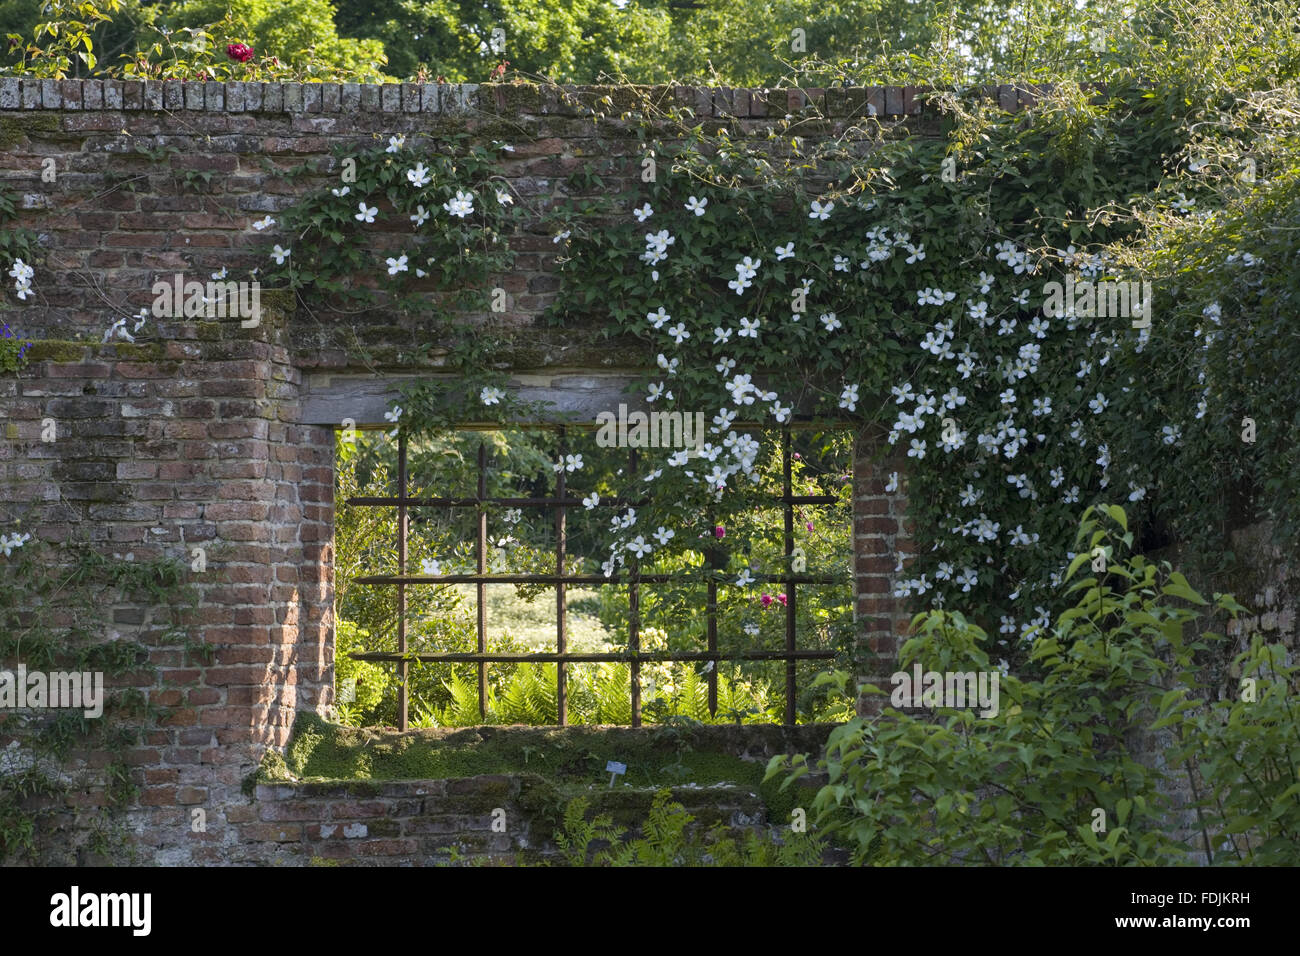 Clematis Overhanging Window On The Wall Between The Tower Lawn And The Rose  Garden, At